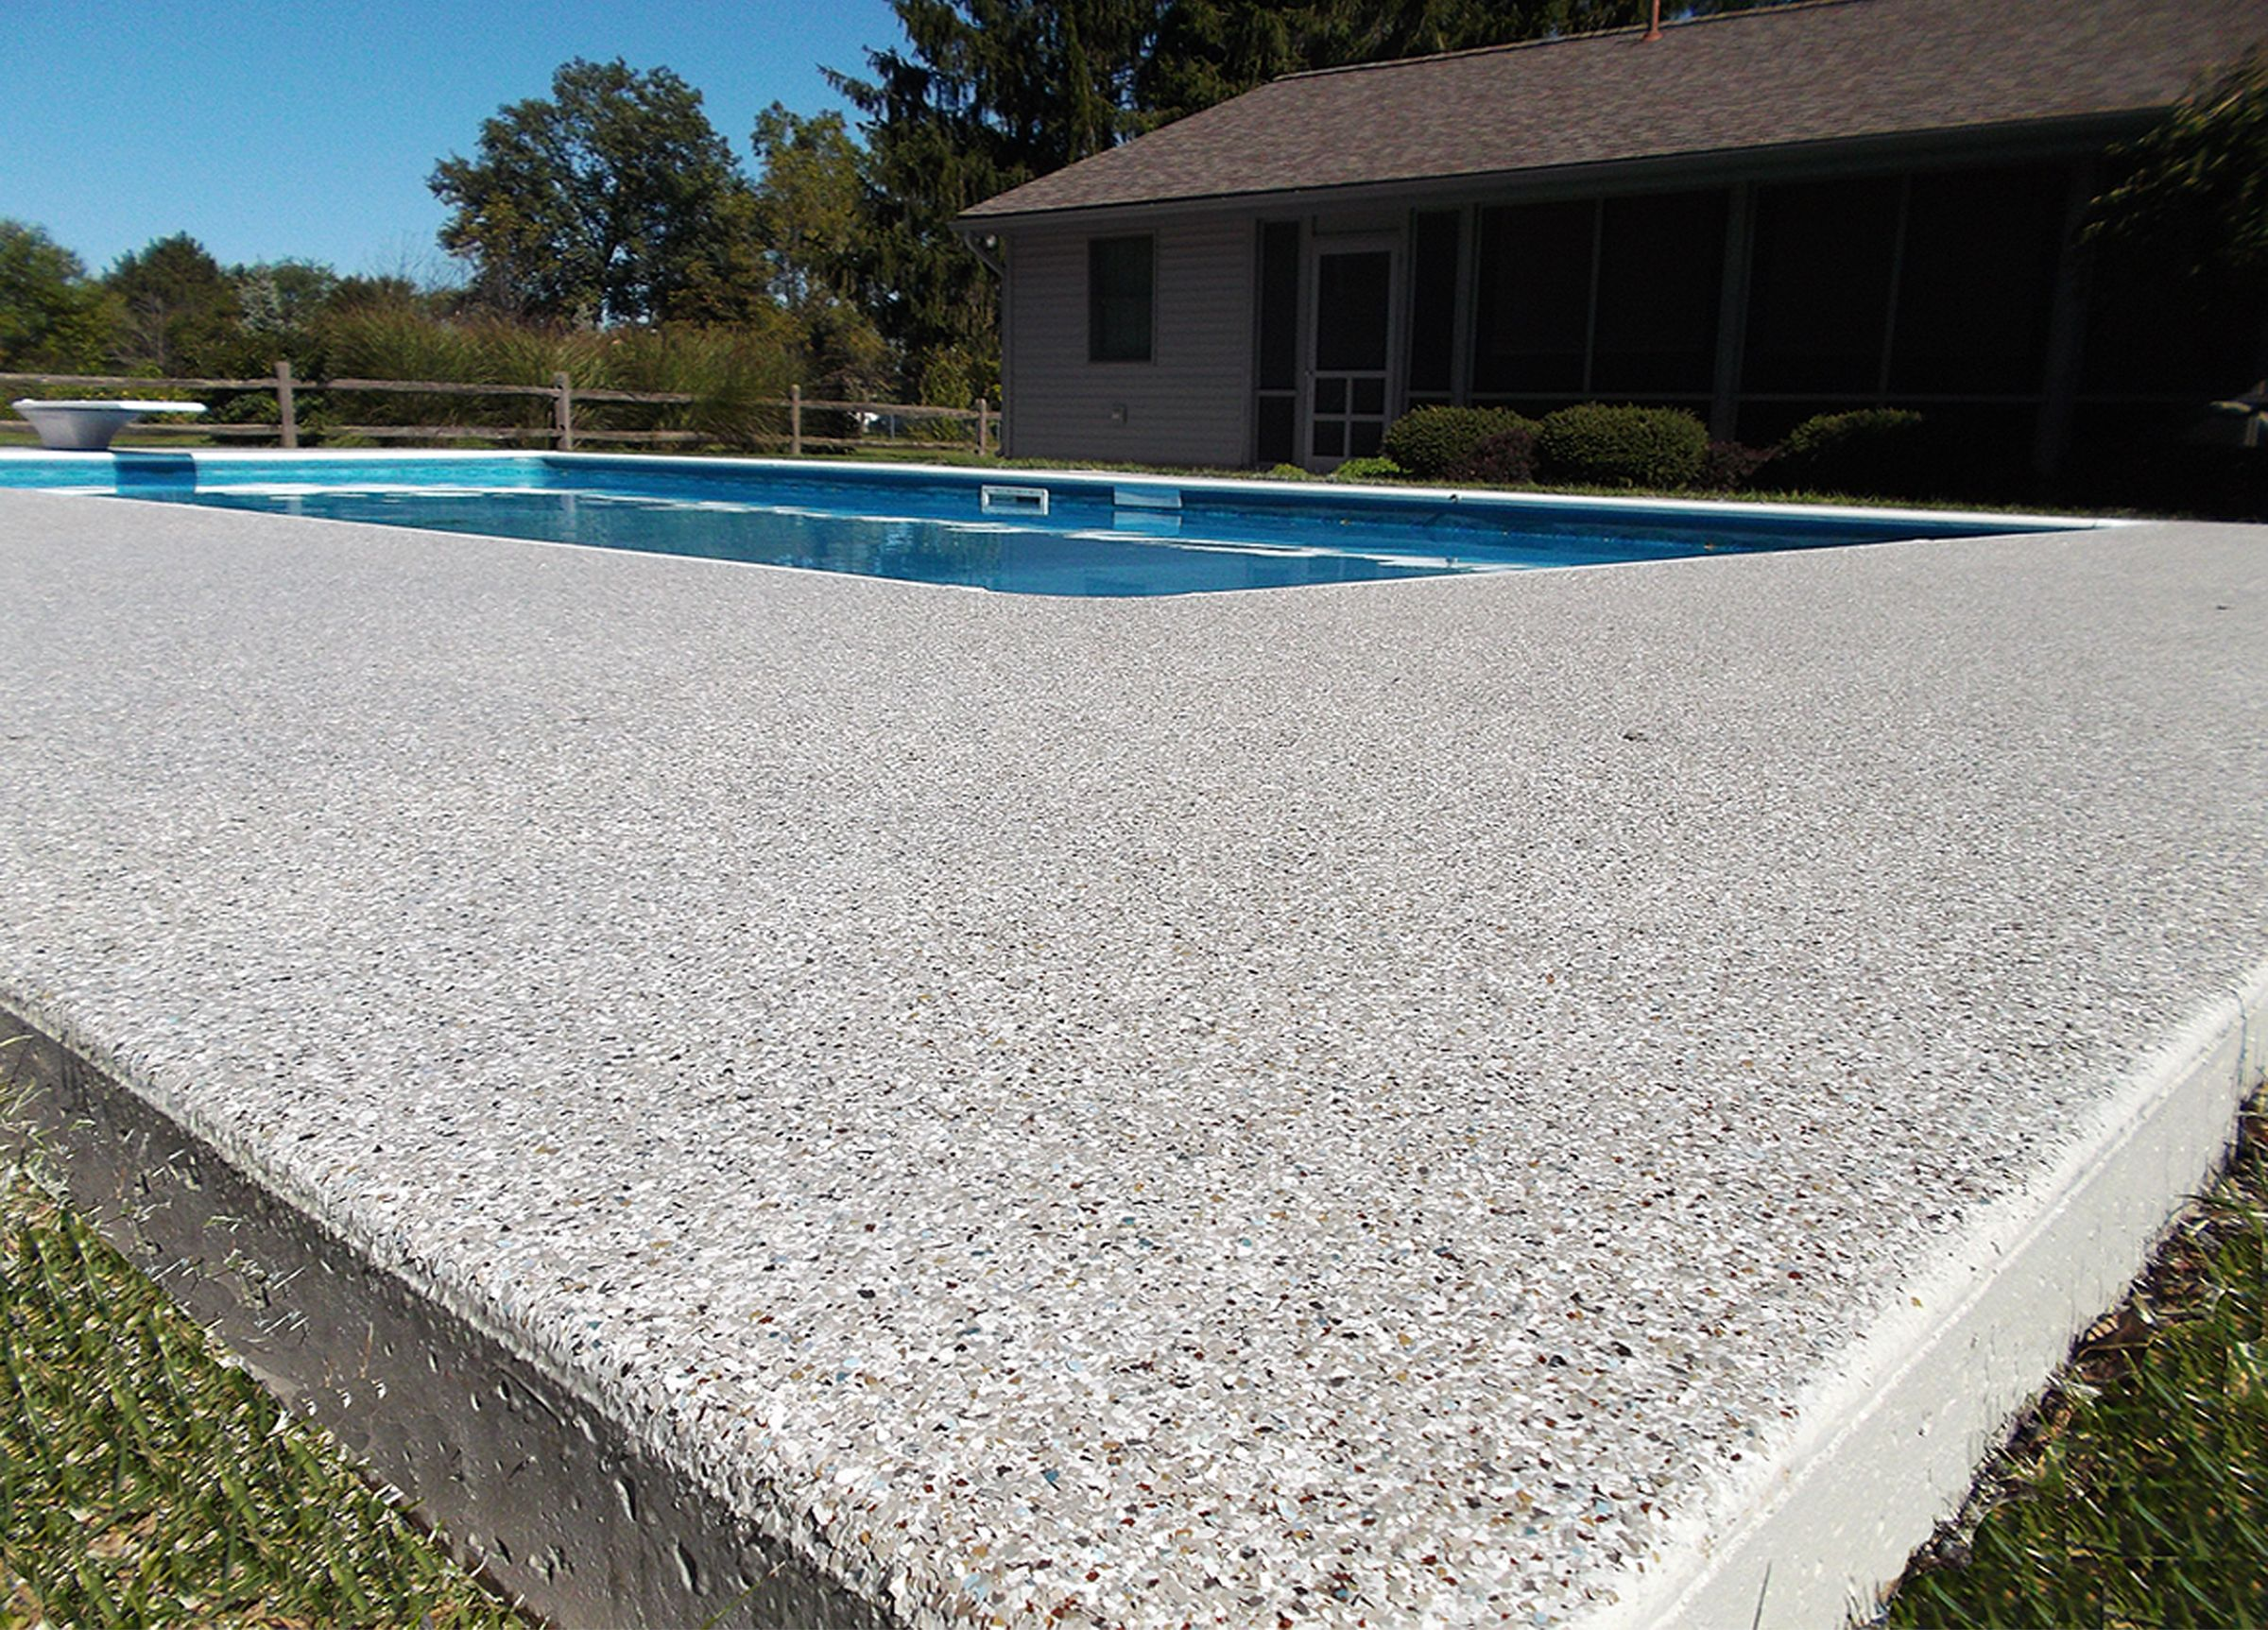 Concrete Pool Deck Ideas pool deck richmond Find This Pin And More On Pool Deck Designs